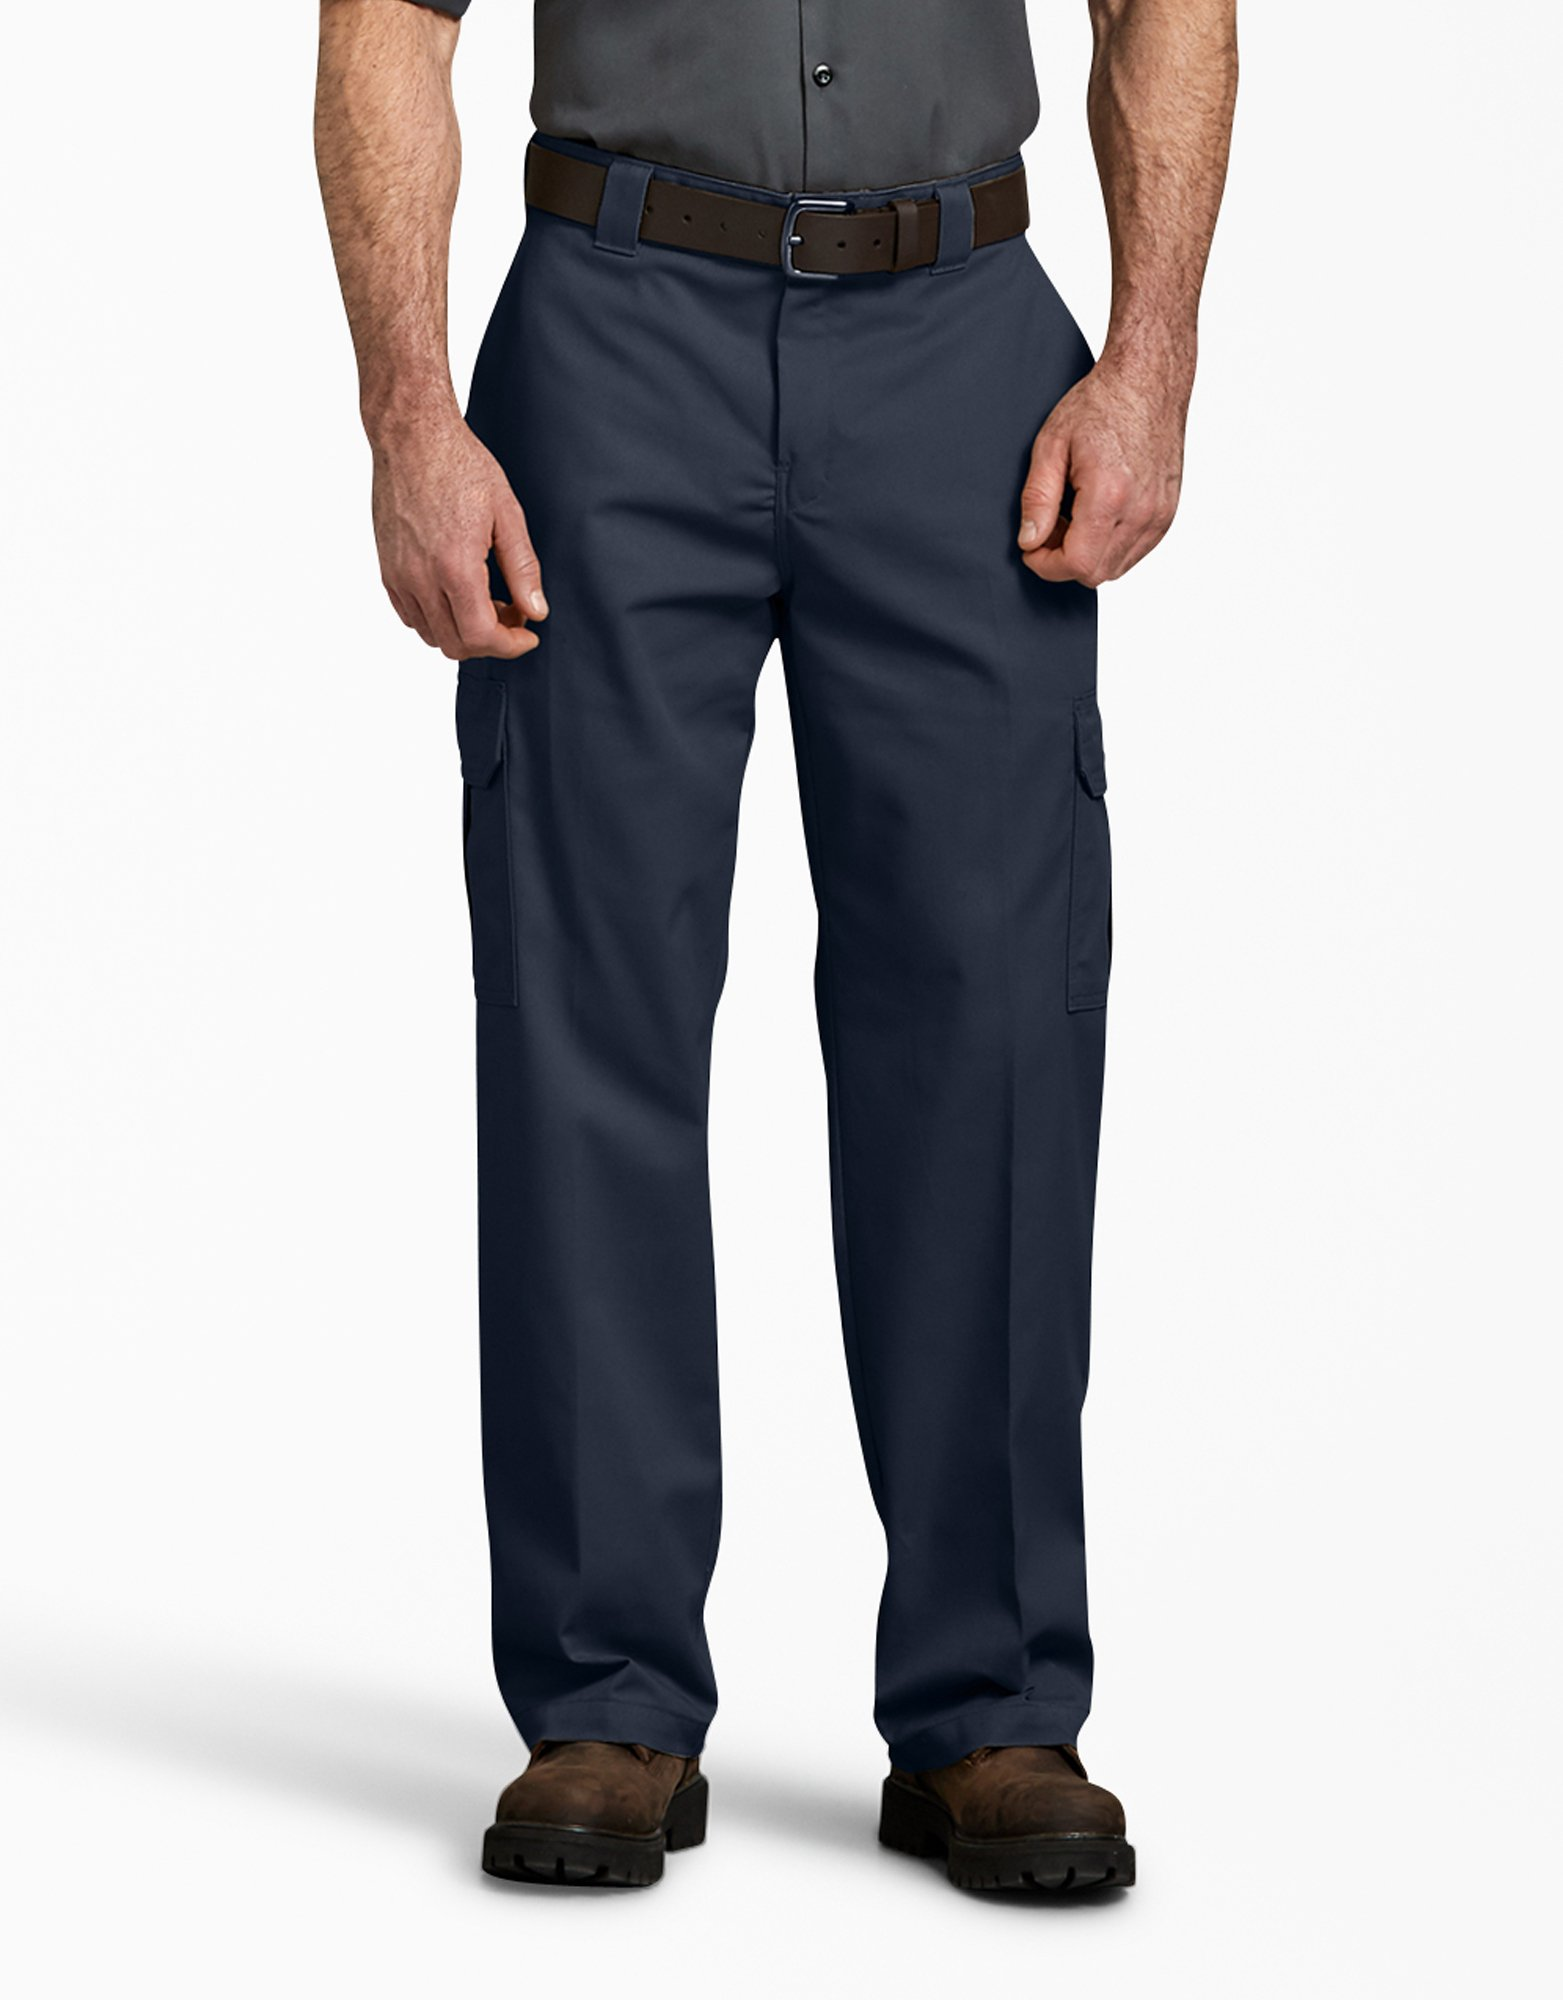 FLEX Relaxed Fit Straight Leg Cargo Pants - Dark Navy (DN)